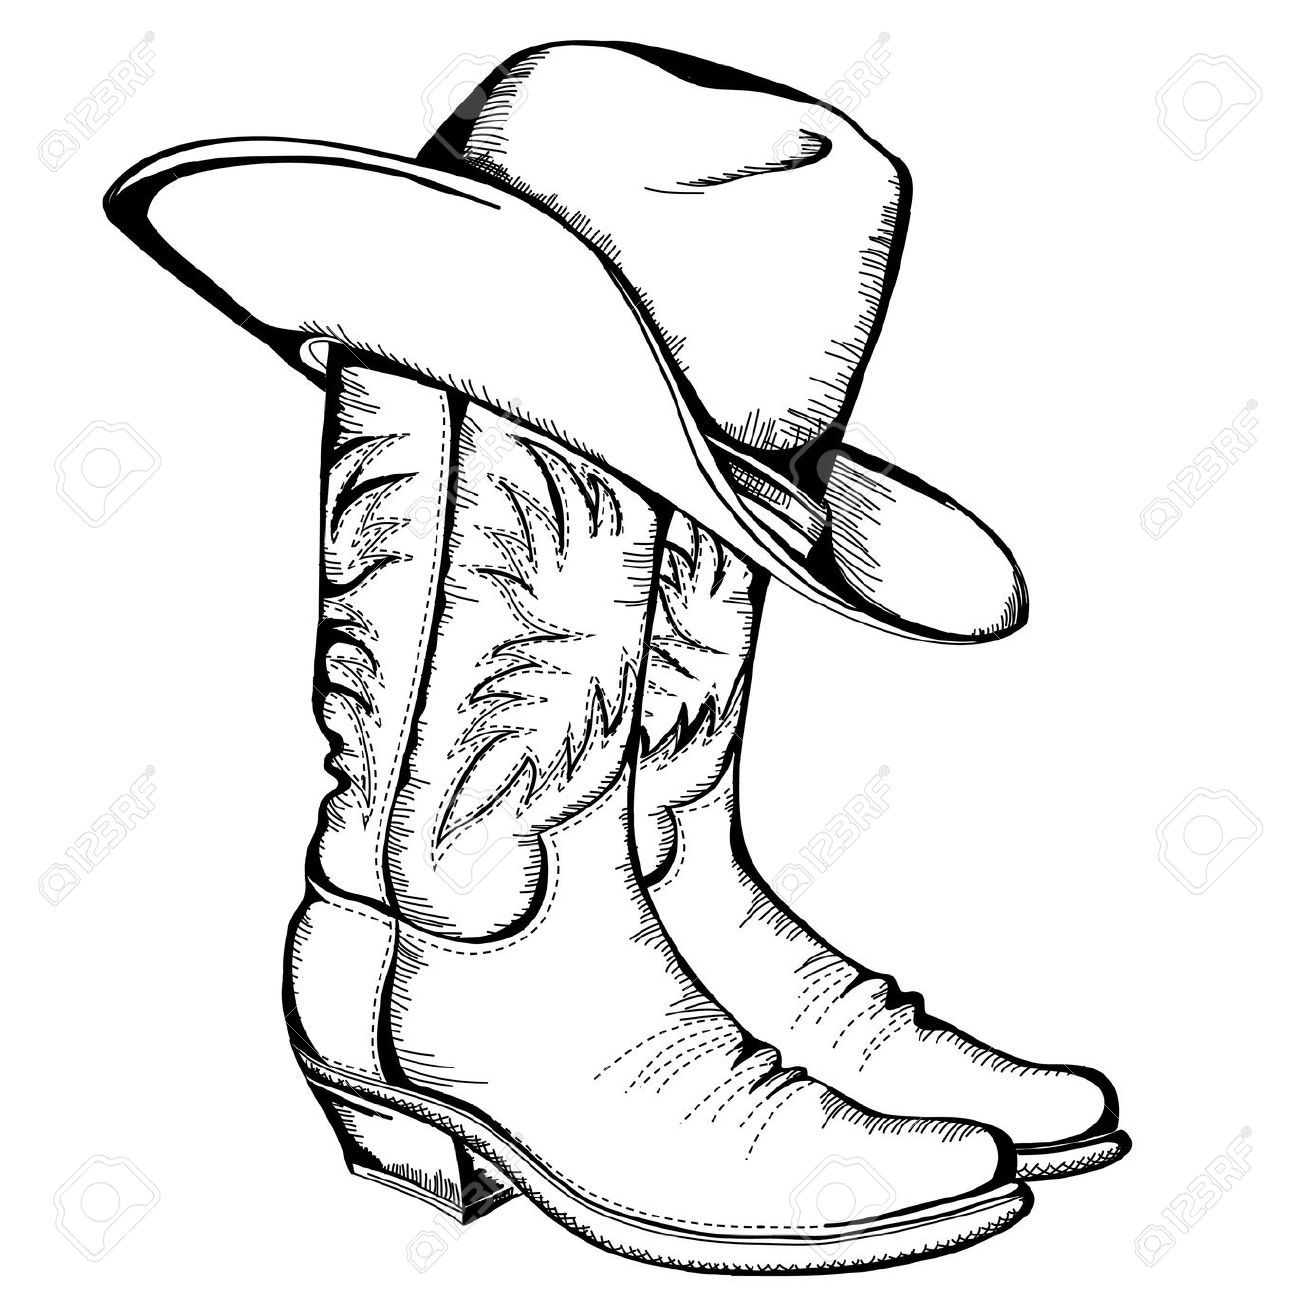 Cowboy Boots And Hat Graphic Illustration Royalty Free Cliparts Vectors And Stock Illustration